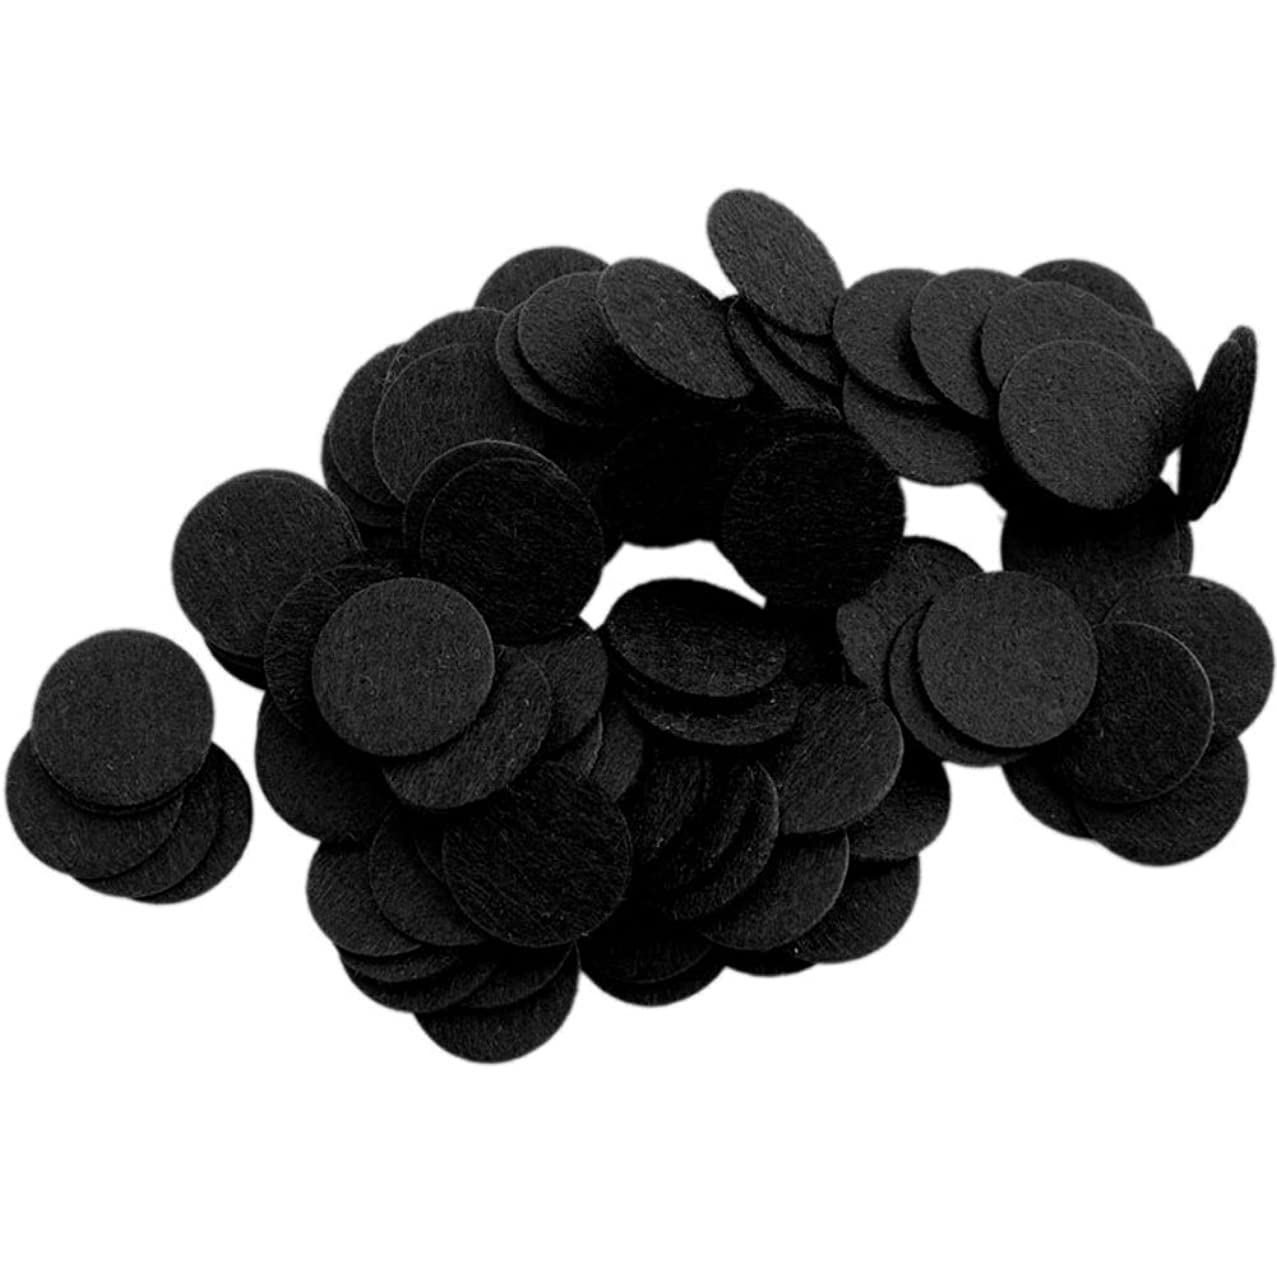 Playfully Ever After 1 Inch Black 100pc Stiff Felt Circles